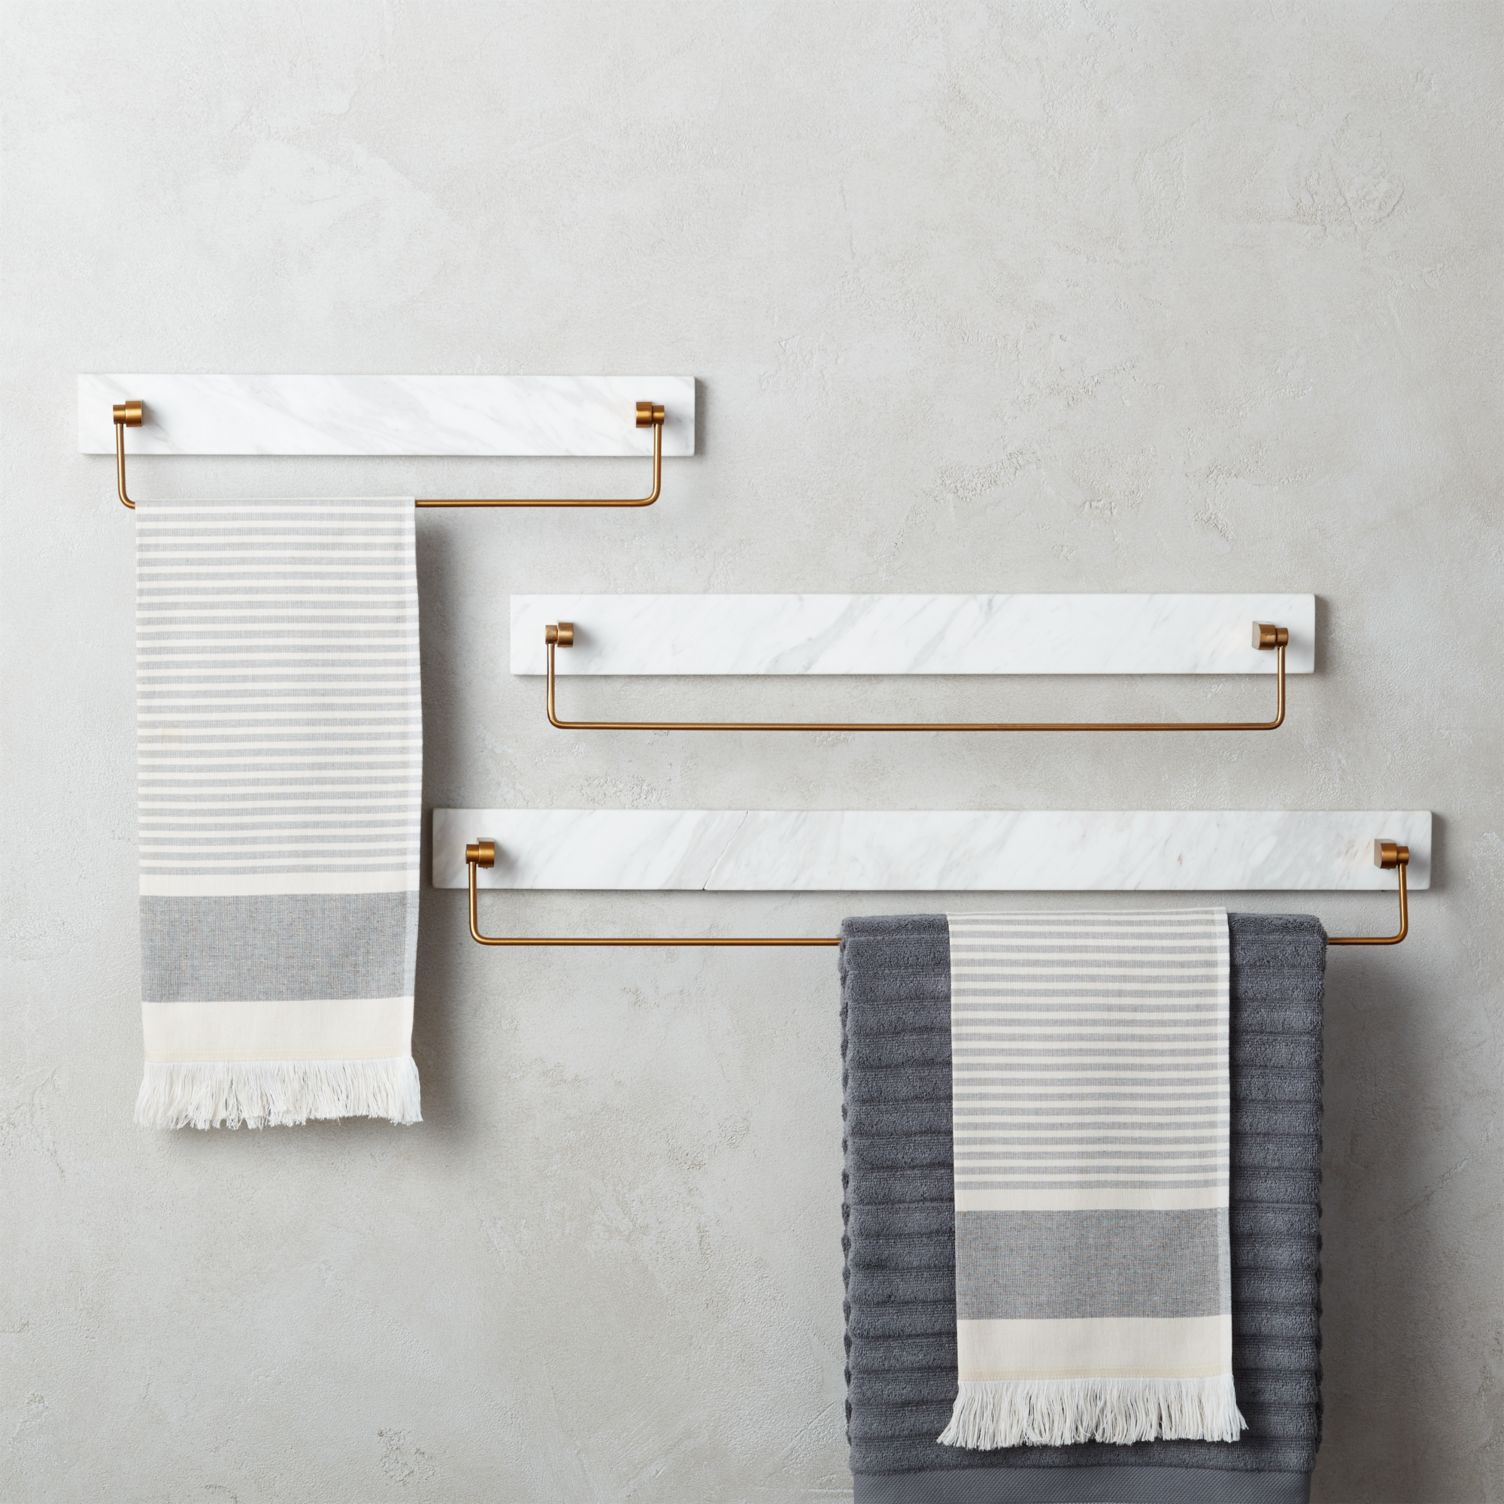 Marble towel bars with gold detailing